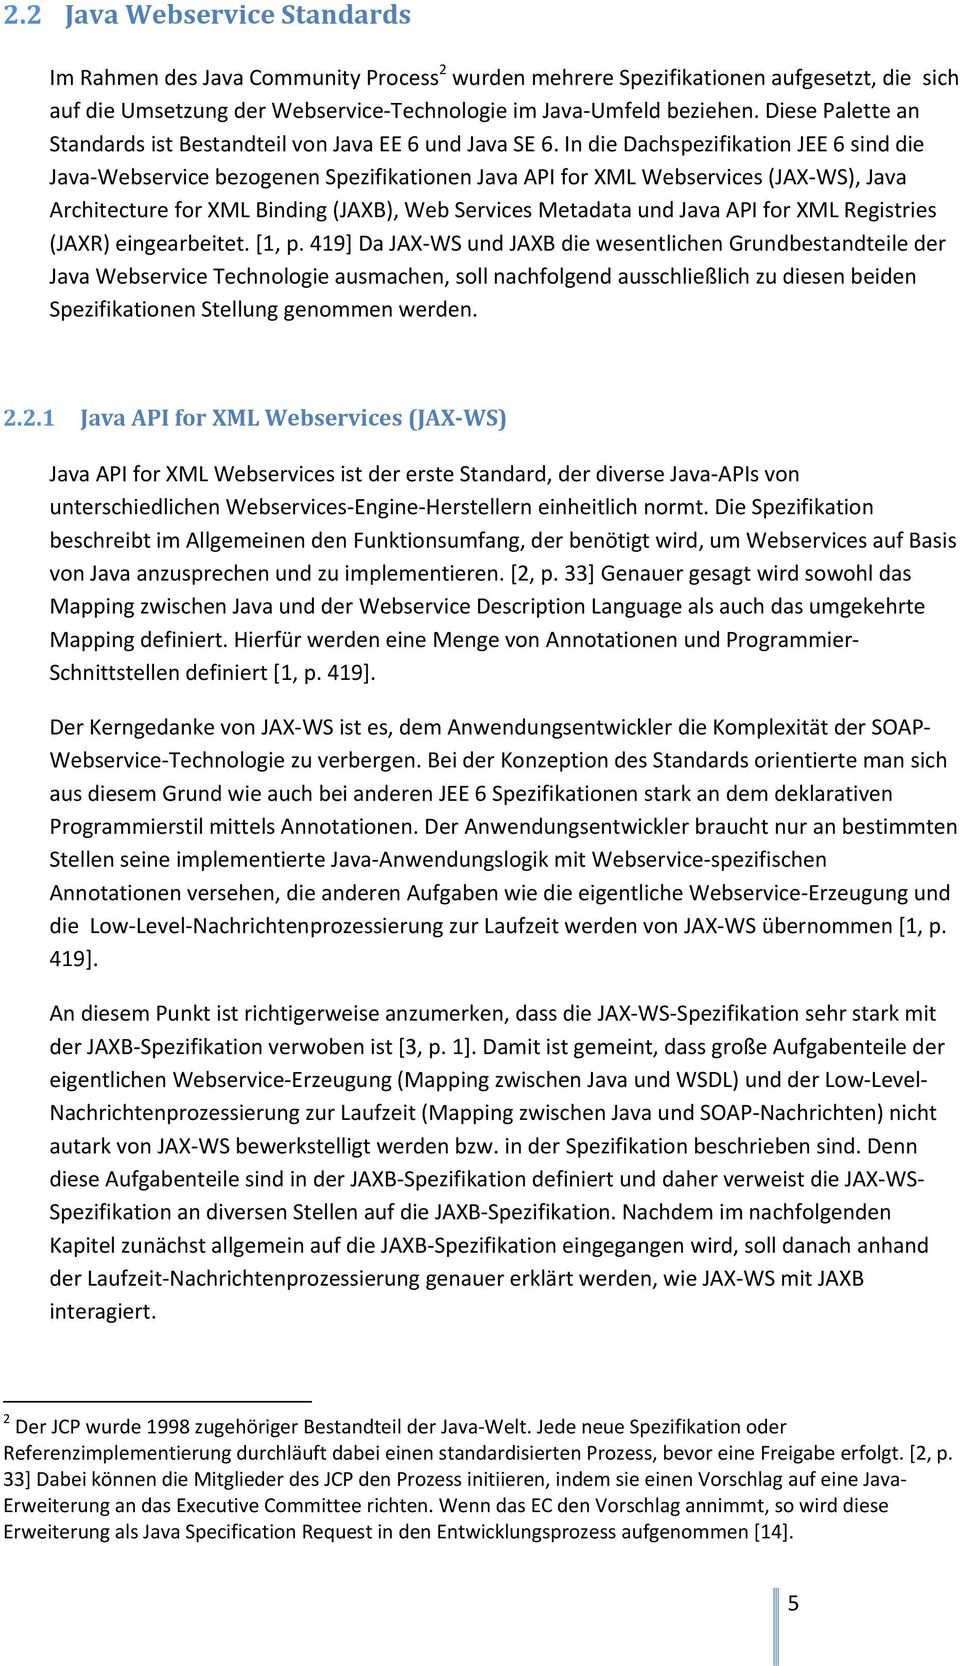 In die Dachspezifikation JEE 6 sind die Java-Webservice bezogenen Spezifikationen Java API for XML Webservices (JAX-WS), Java Architecture for XML Binding (JAXB), Web Services Metadata und Java API